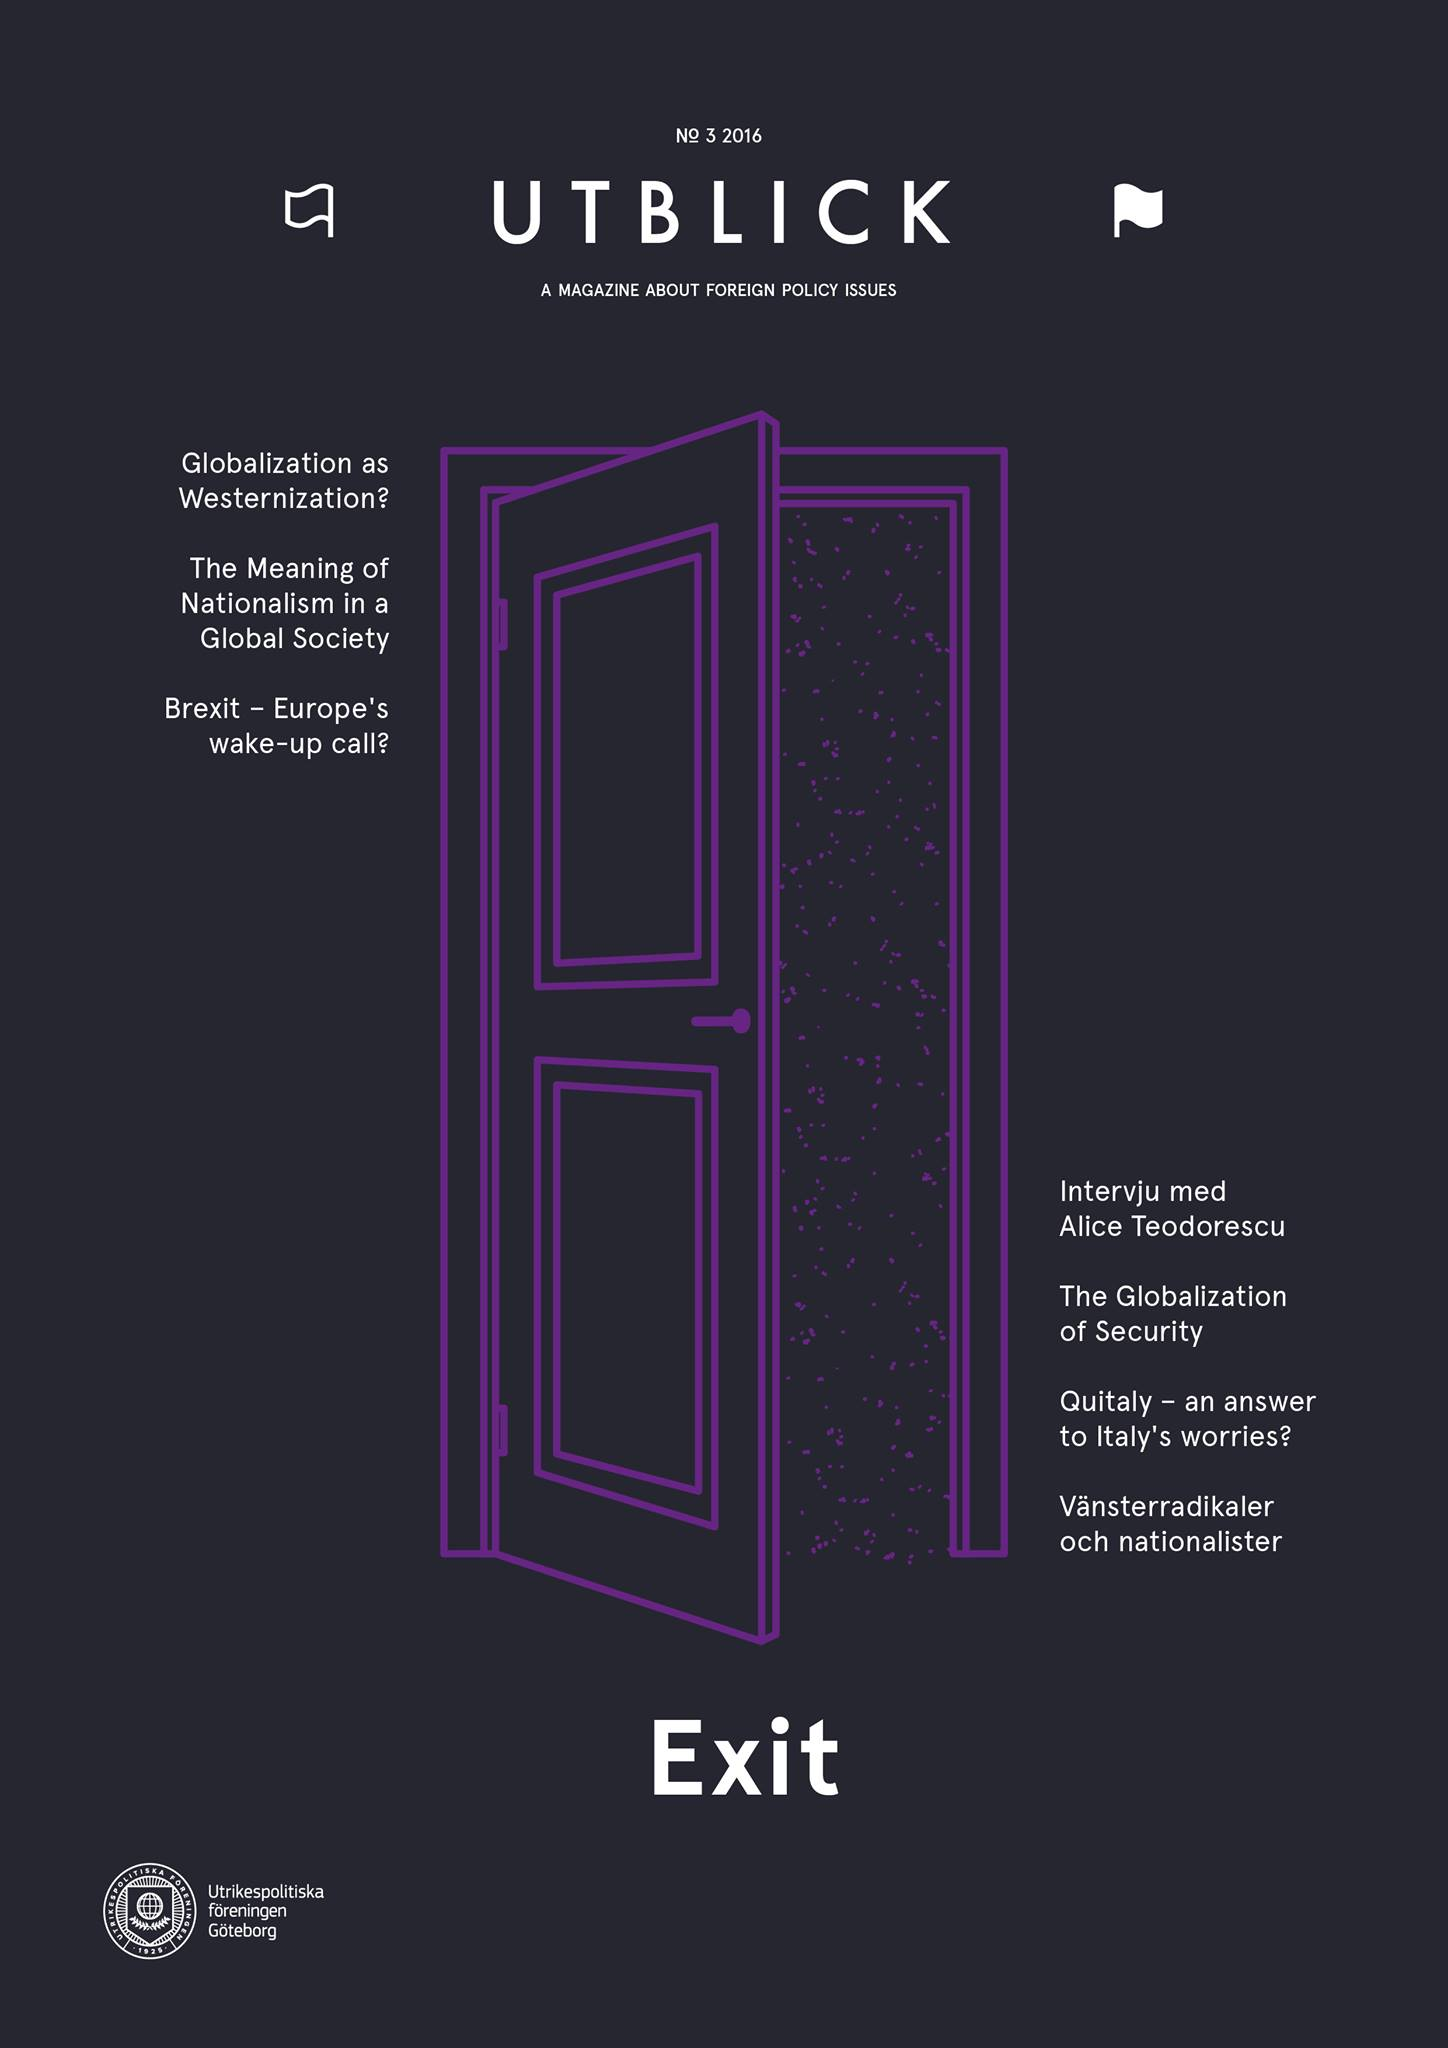 New Issue of Utblick: Exit